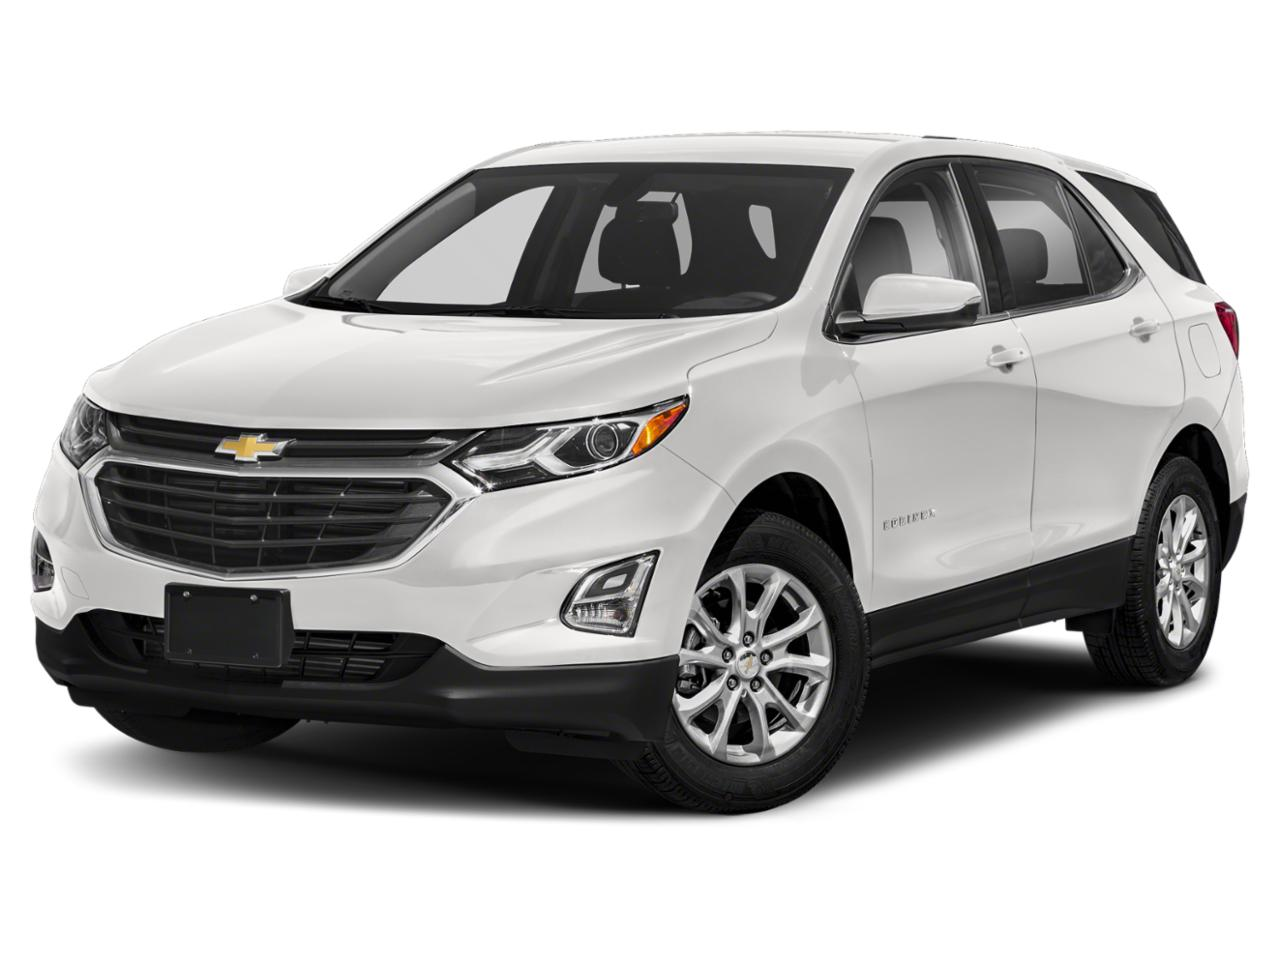 2019 Chevrolet Equinox Vehicle Photo in BOONVILLE, IN 47601-9633